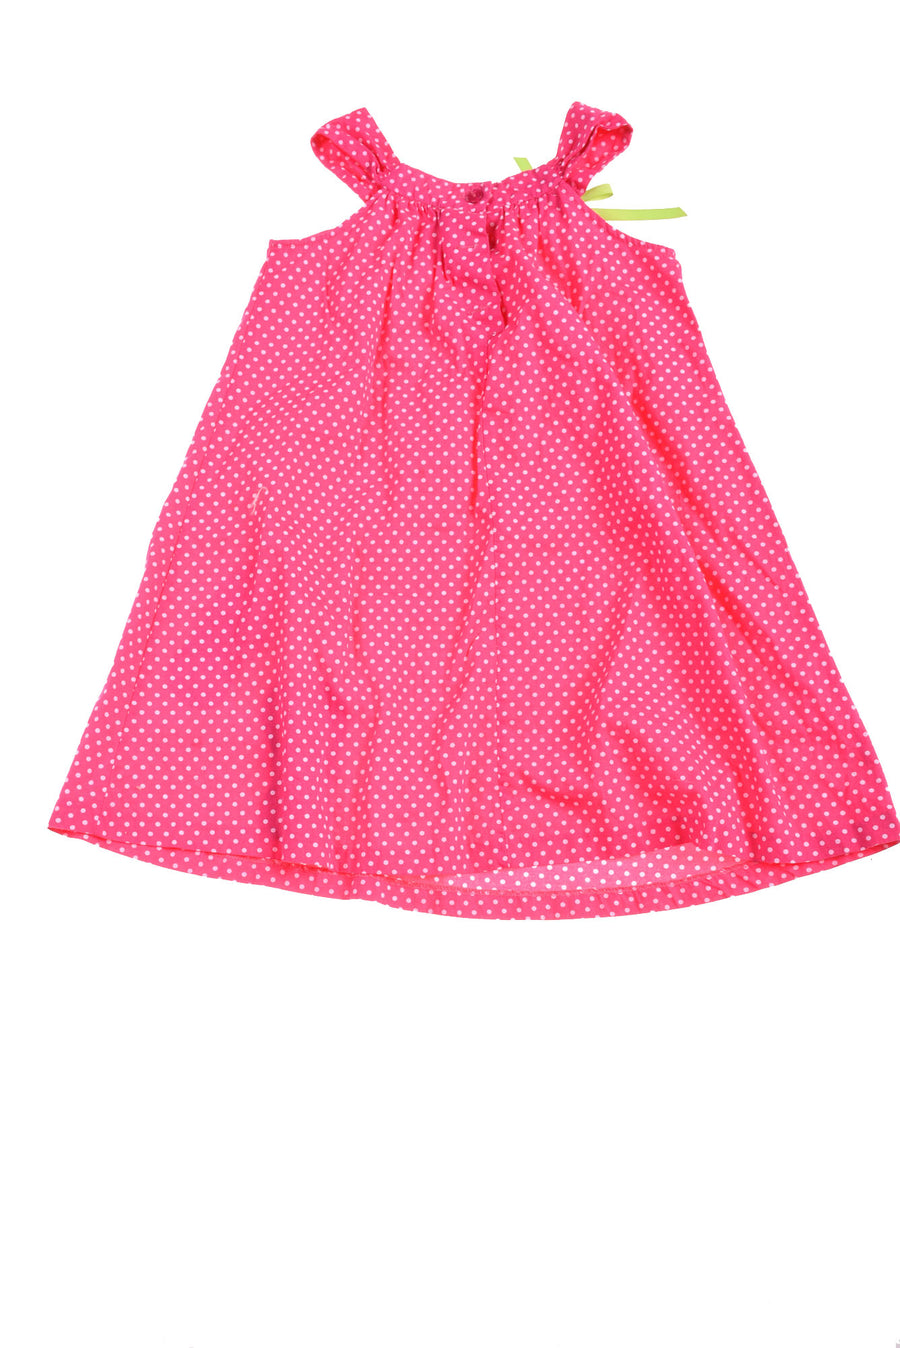 USED Rare Editions Toddler Girl's Dress 6 Pink